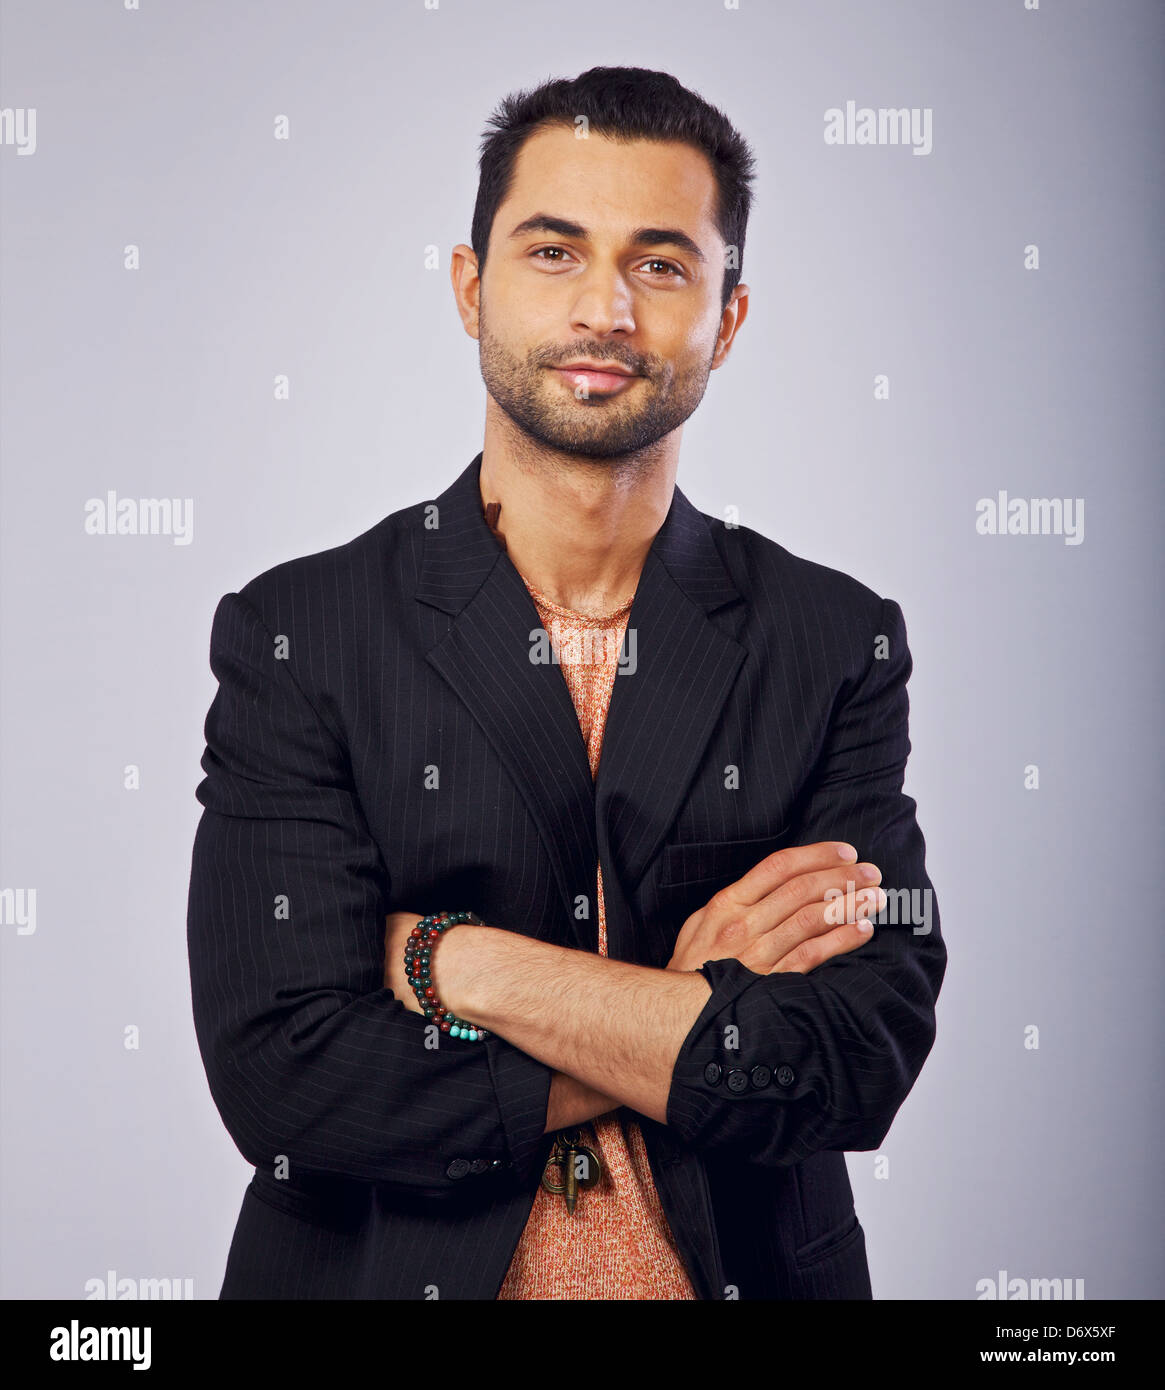 Studio shot of a confident casual middle eastern guy - Stock Image